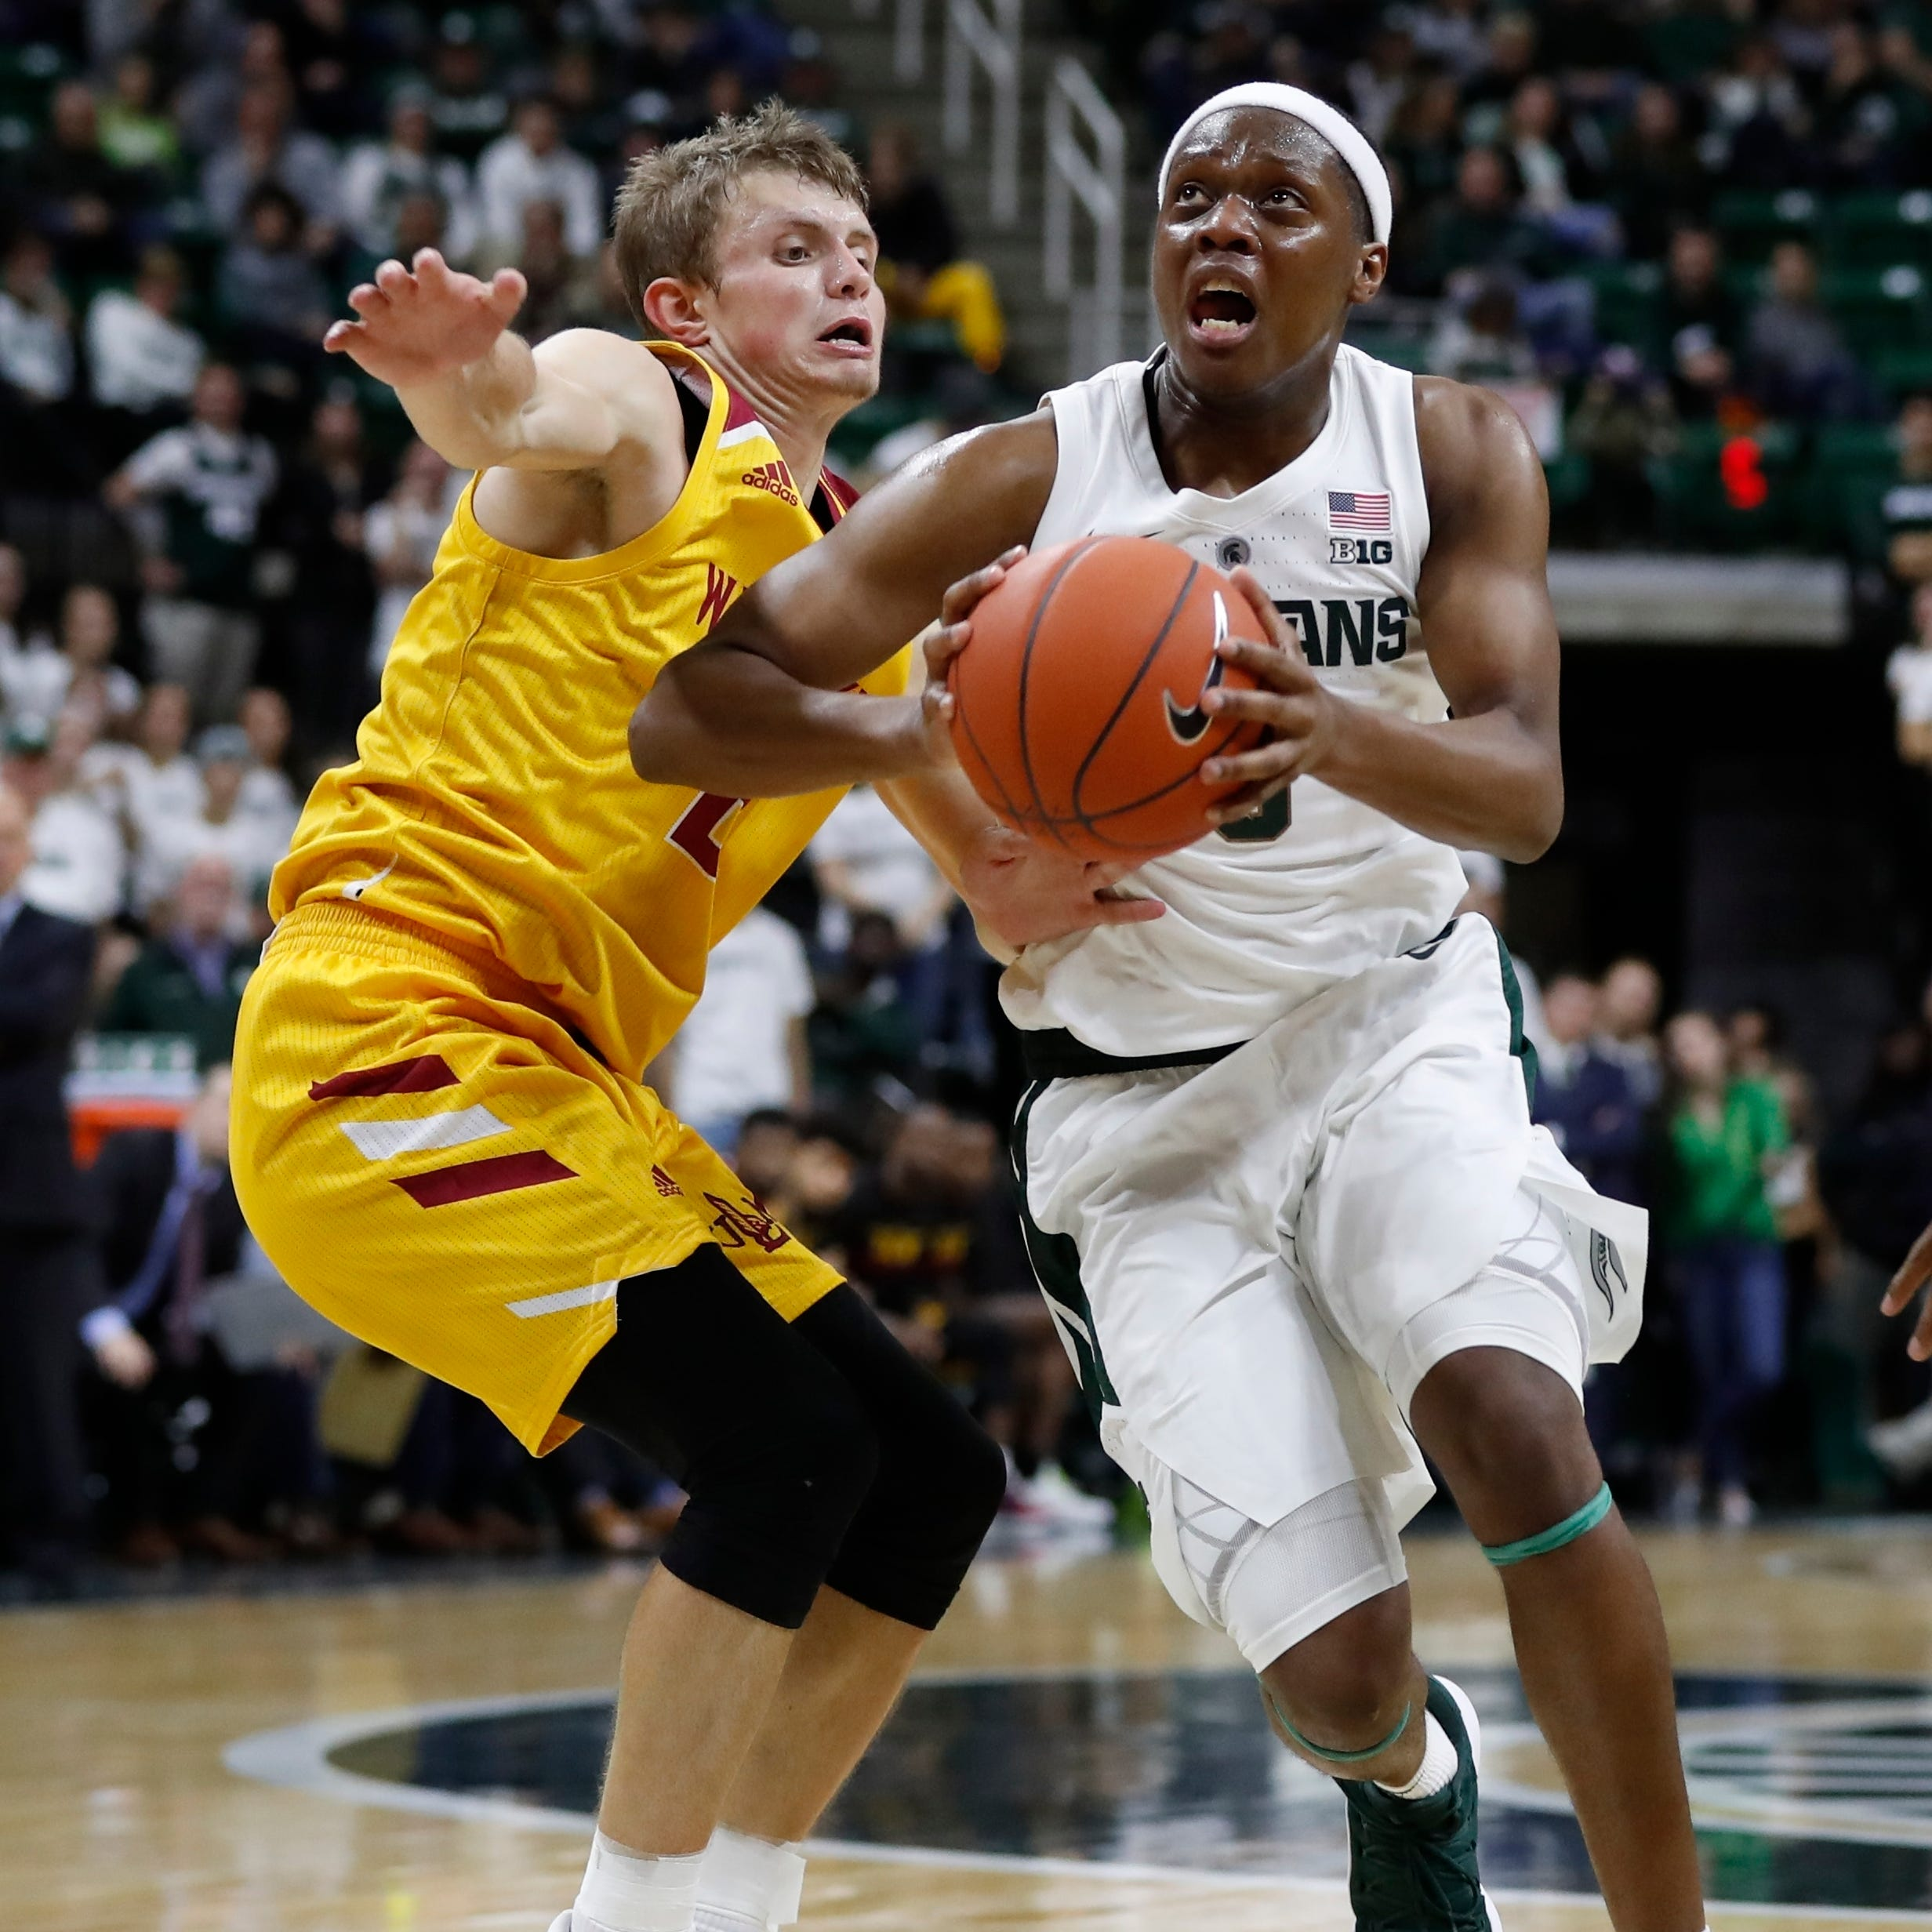 Spartans strive to build 'championship mentality' in Vegas tournament